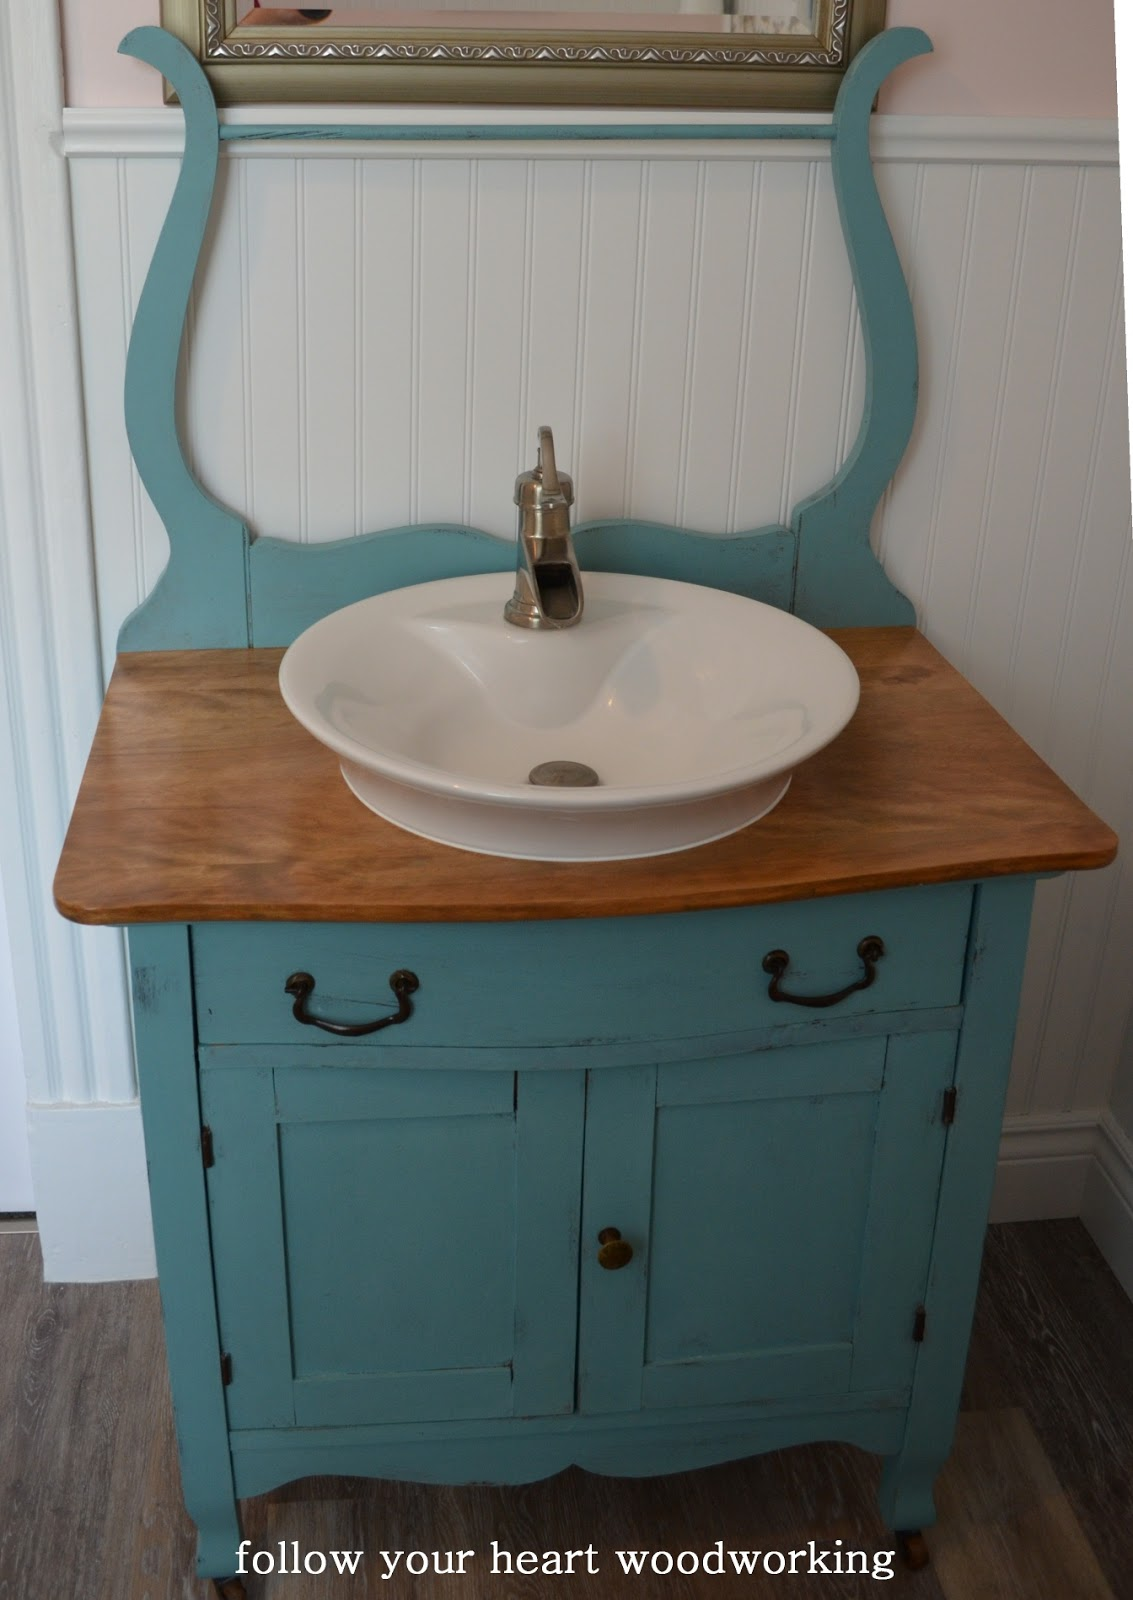 Follow Your Heart Woodworking: Bathroom Renovation   Part 5   The Commode  Turned Into A Vanity